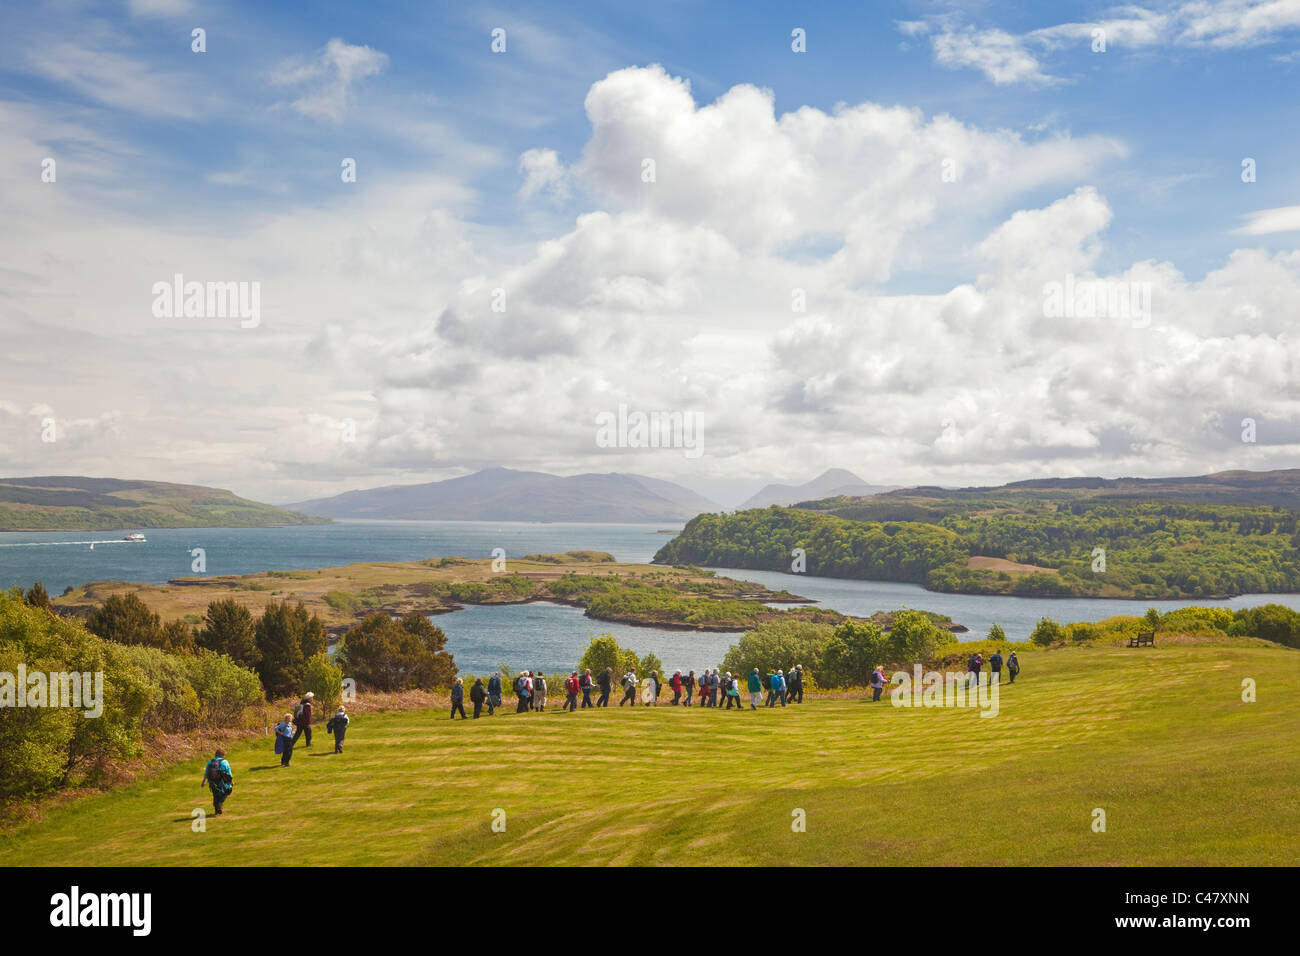 A Rambling Club above Tobermory on the Isle of Mull - Stock Image